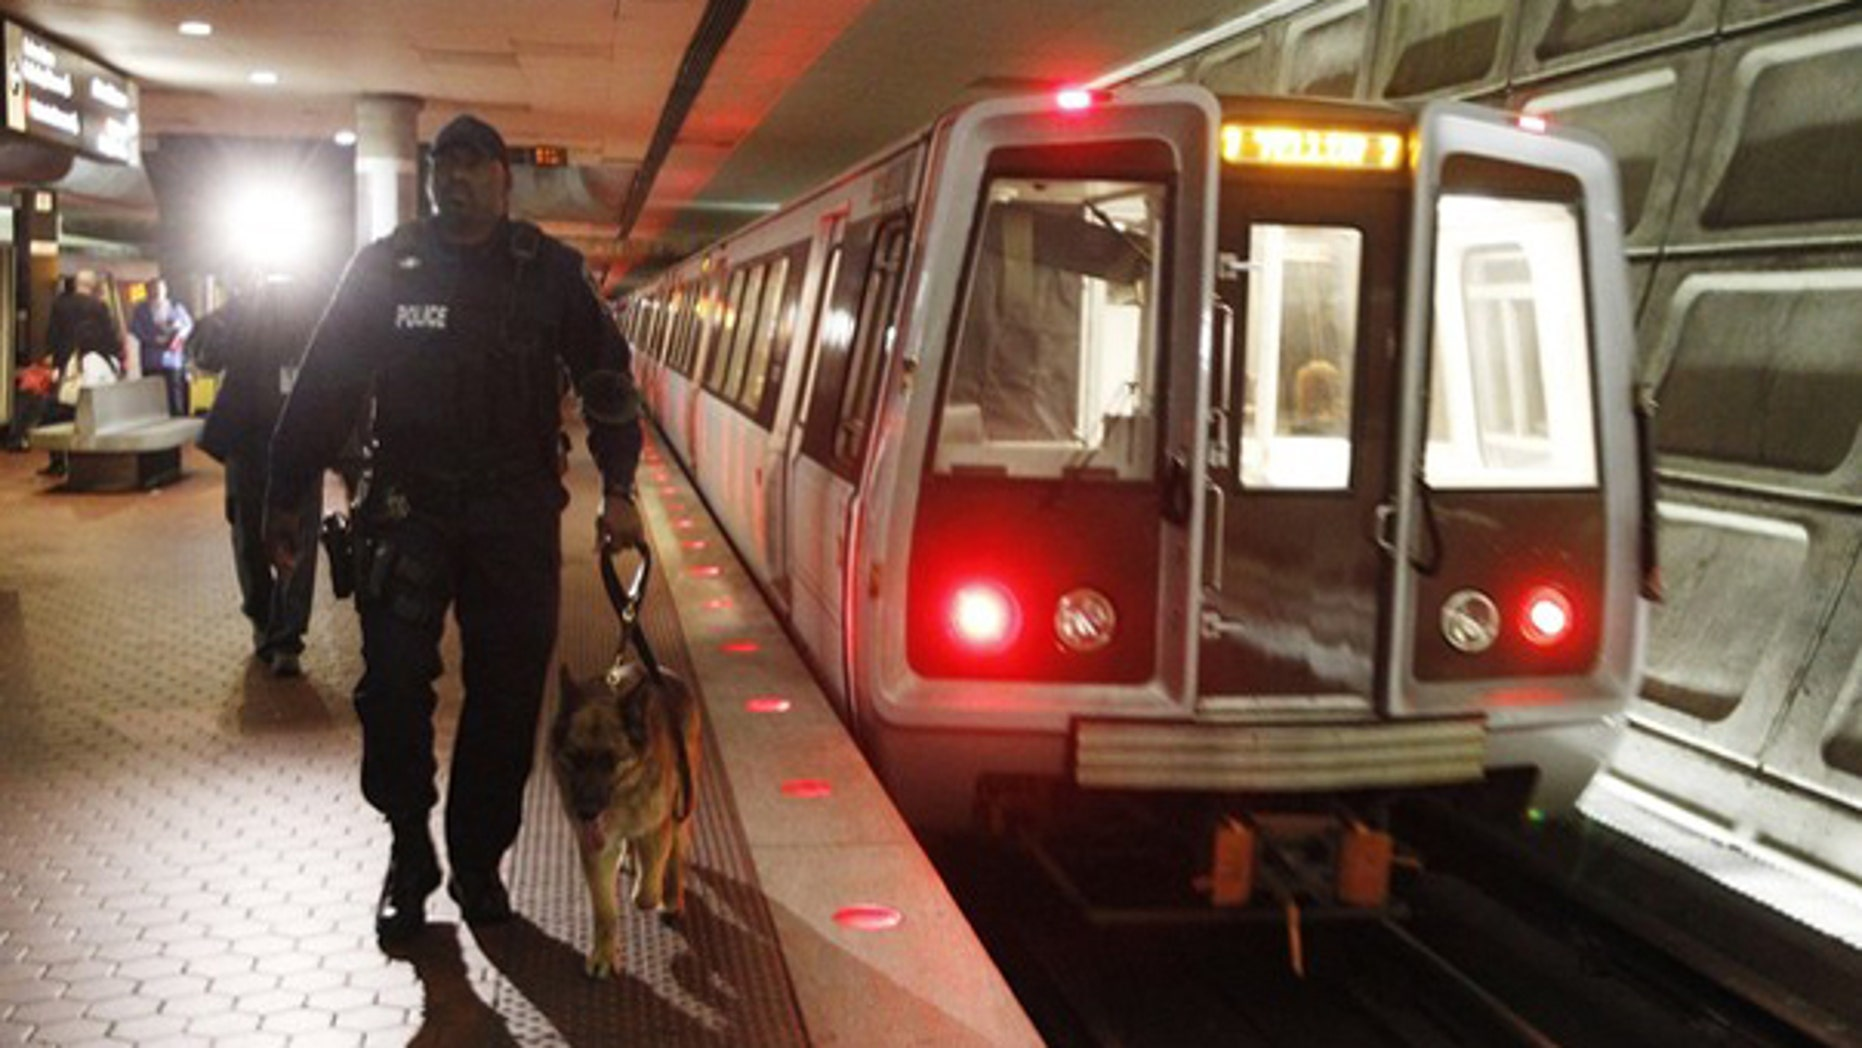 Metro Transit police officer Eric Croom and his dog inspect a Metro station in Washington, D.C., March 29. (Reuters Photo)